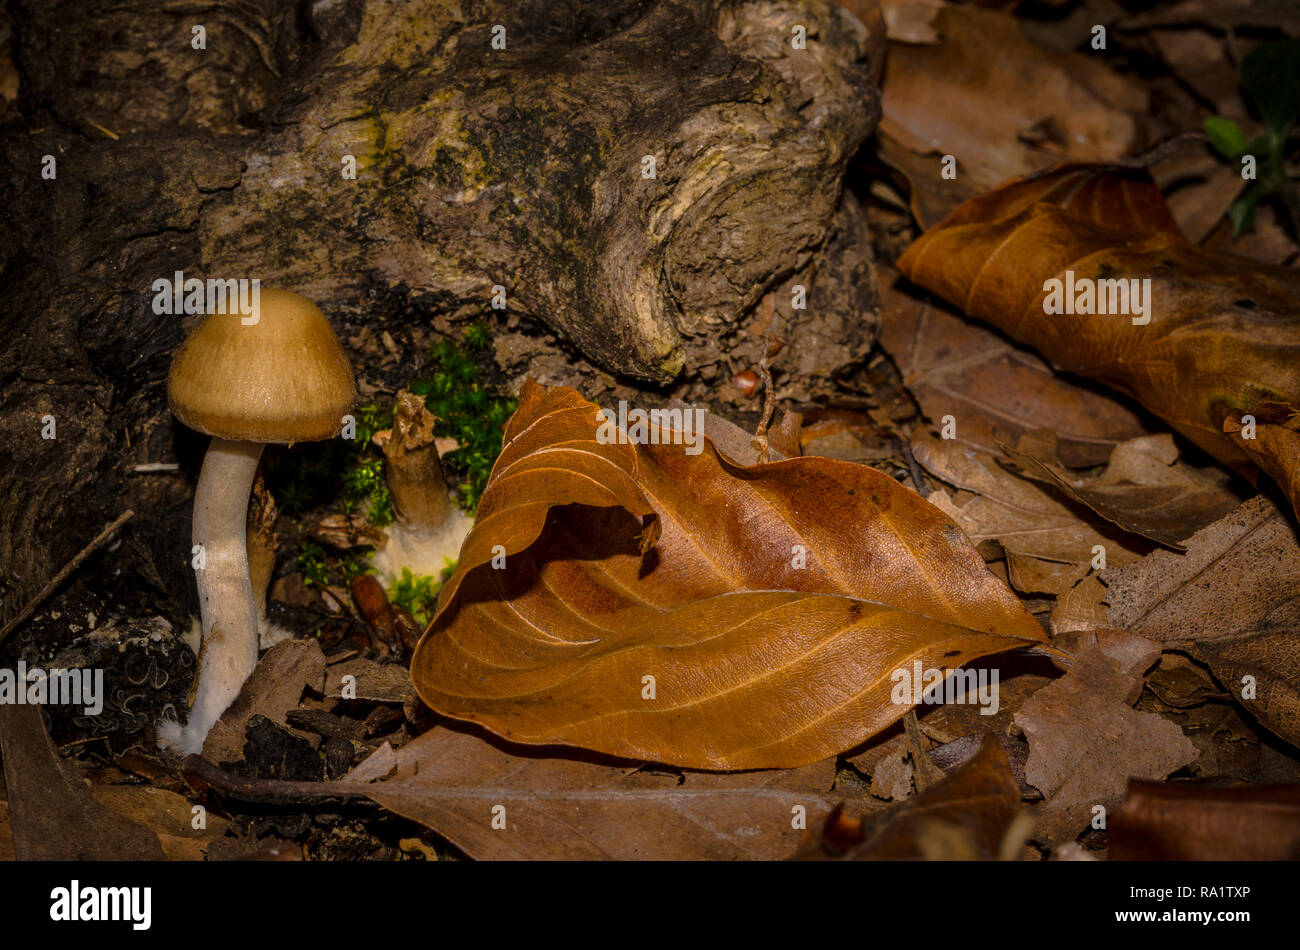 Mushroom hidden in the green moss in the middle of the woods - Stock Image